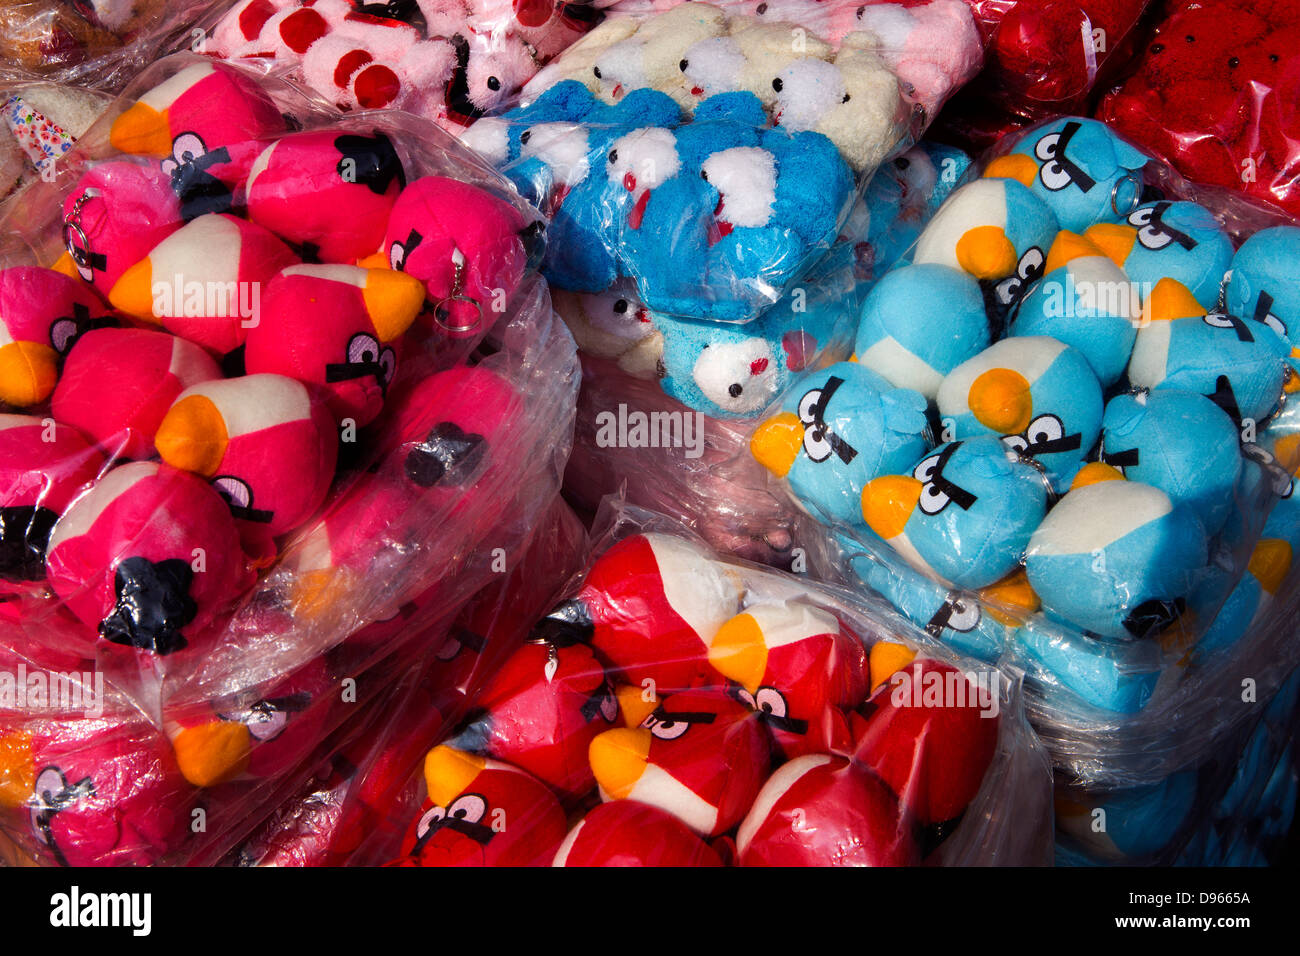 Chinatown market, angry birds toys - Stock Image